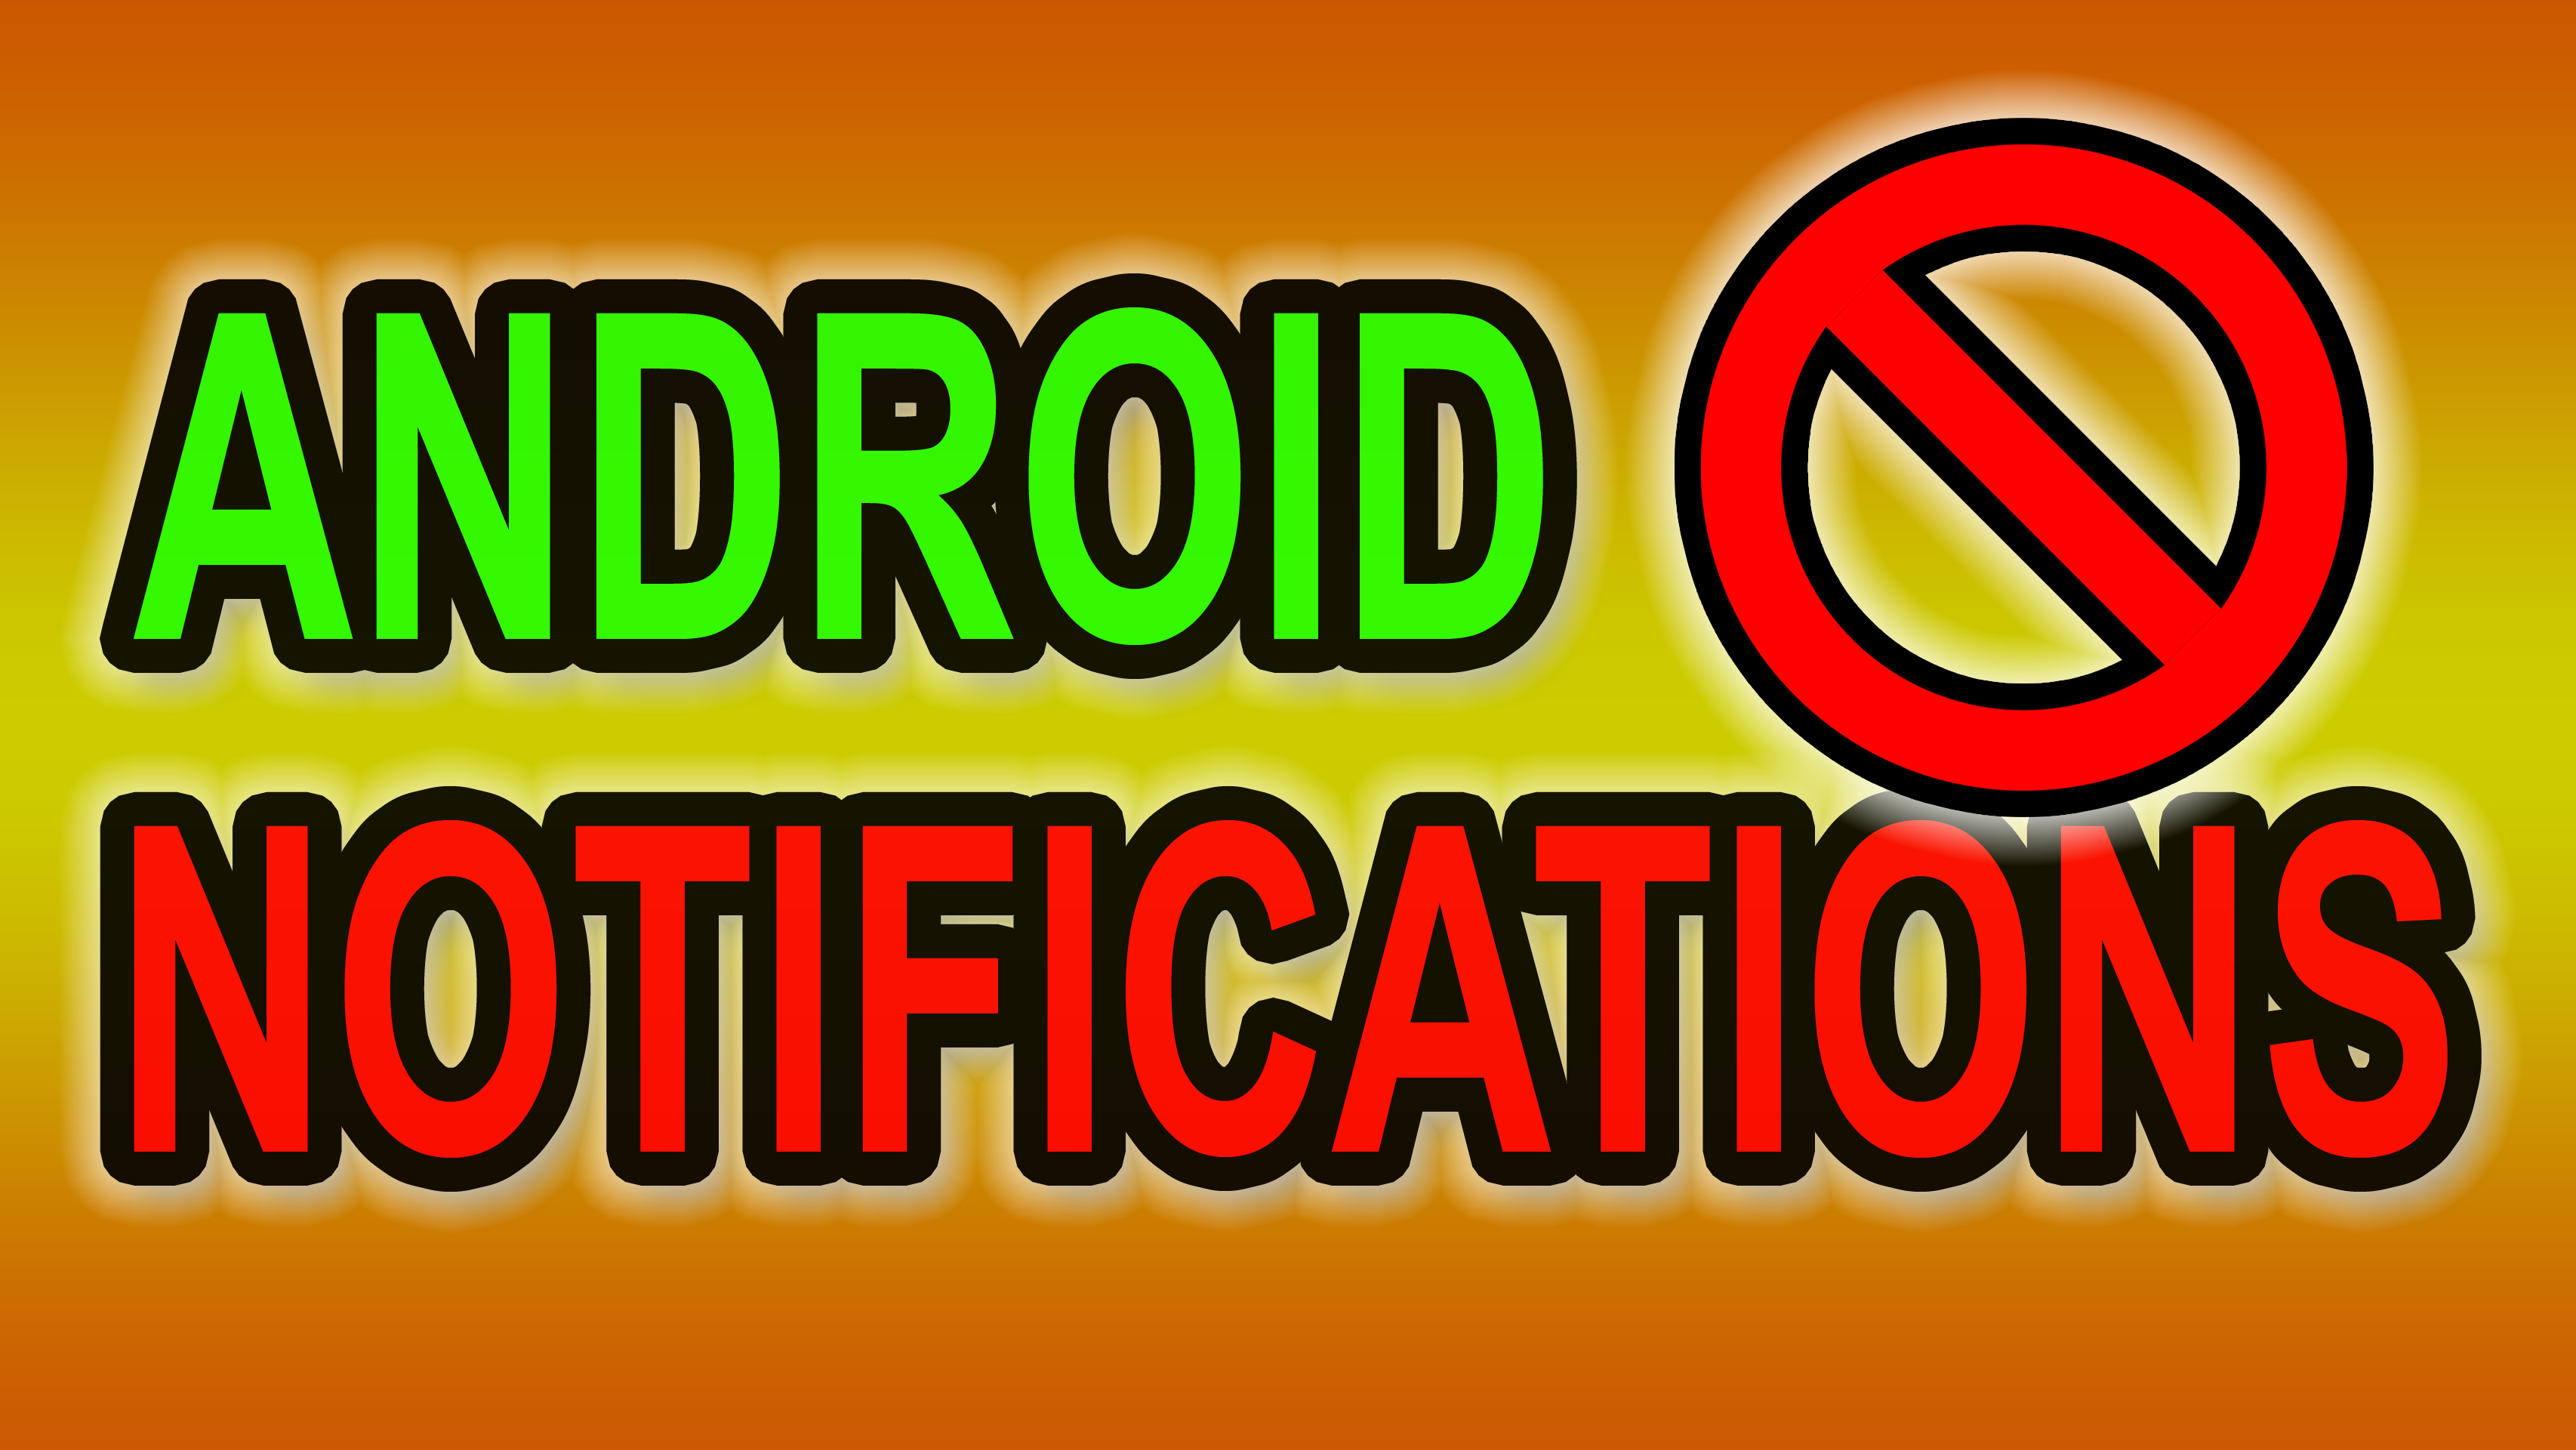 How to block dating apps on android